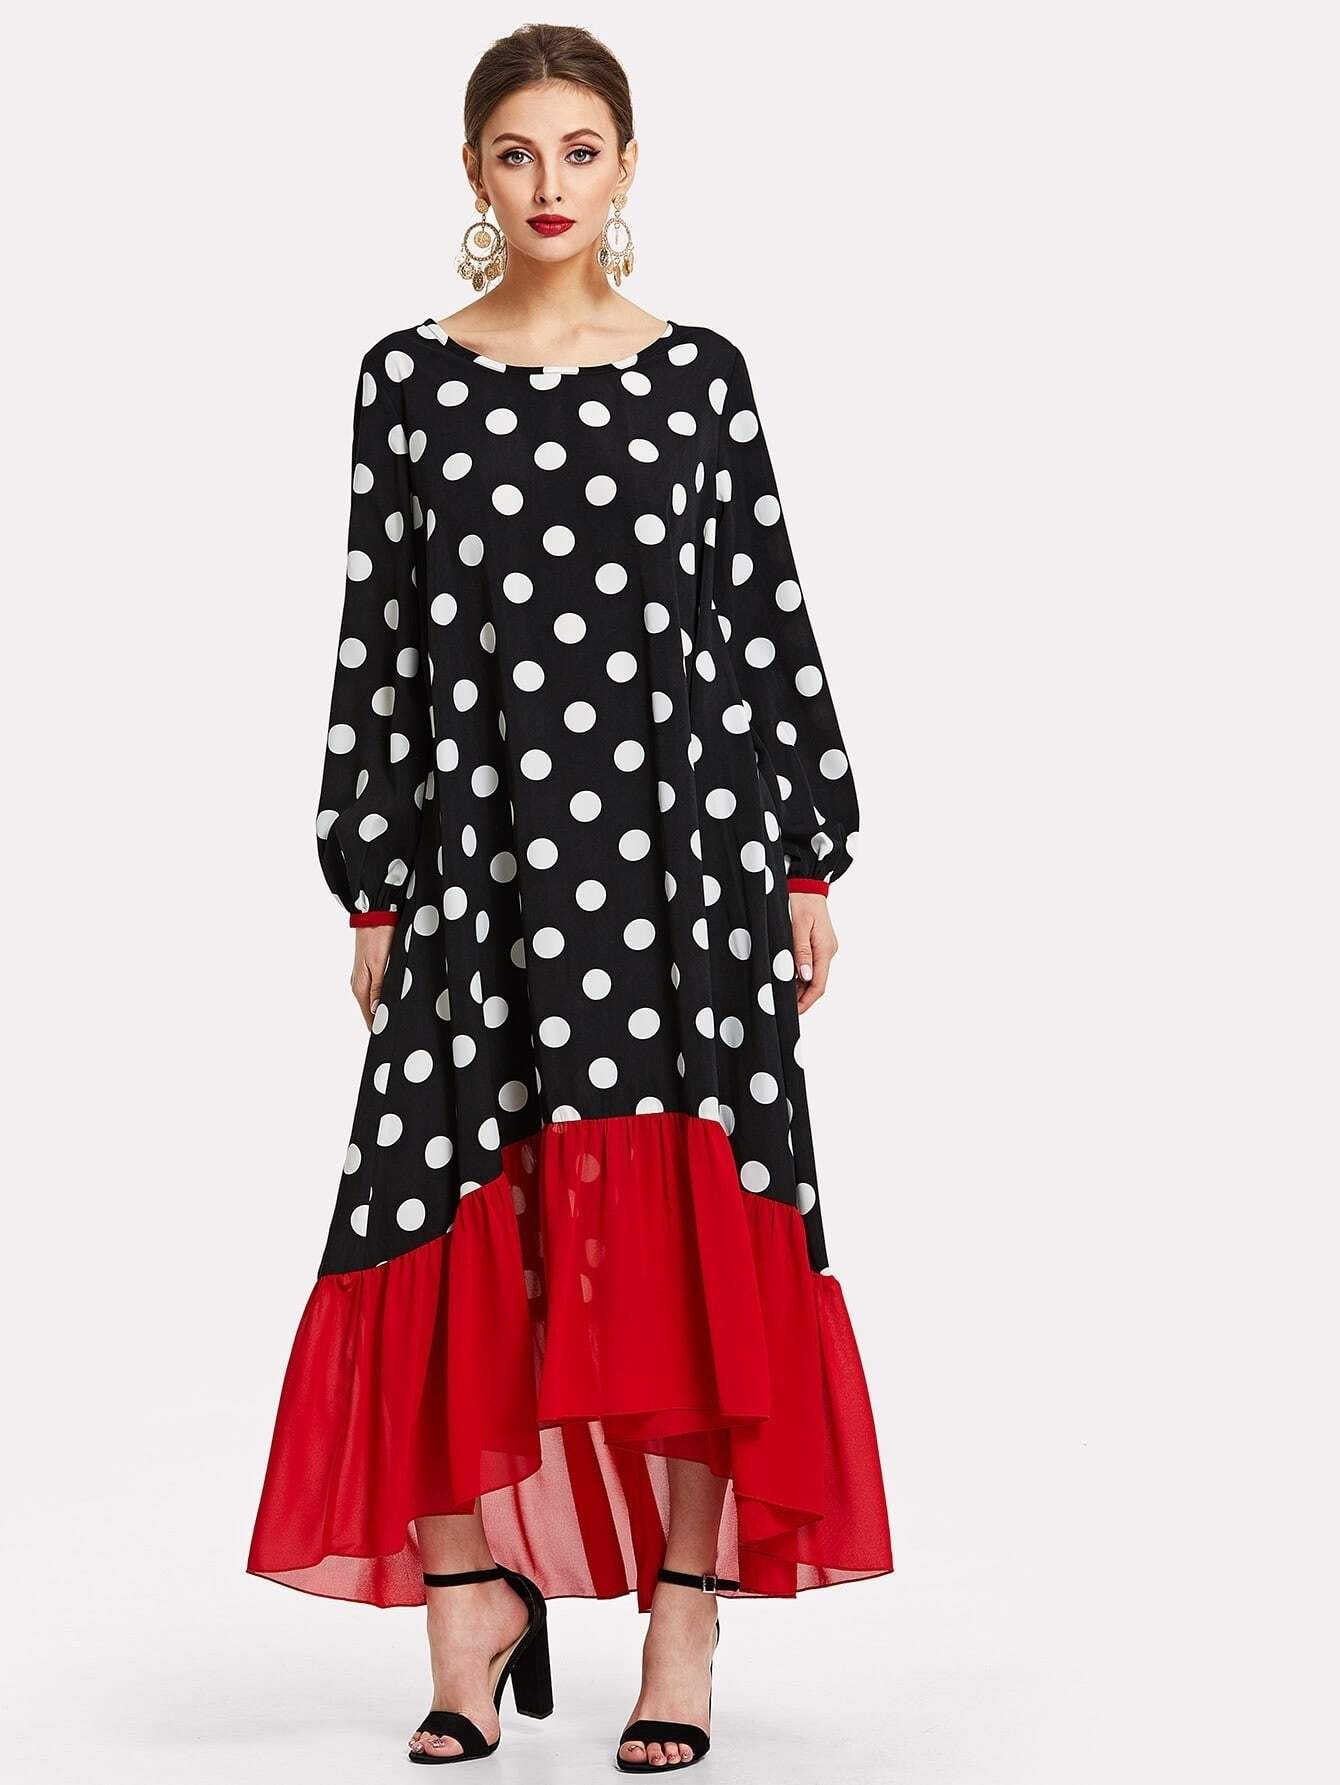 Contrast Ruffle Hem Polka Dot Hijab Long Dress polka dot slit hem contrast dress